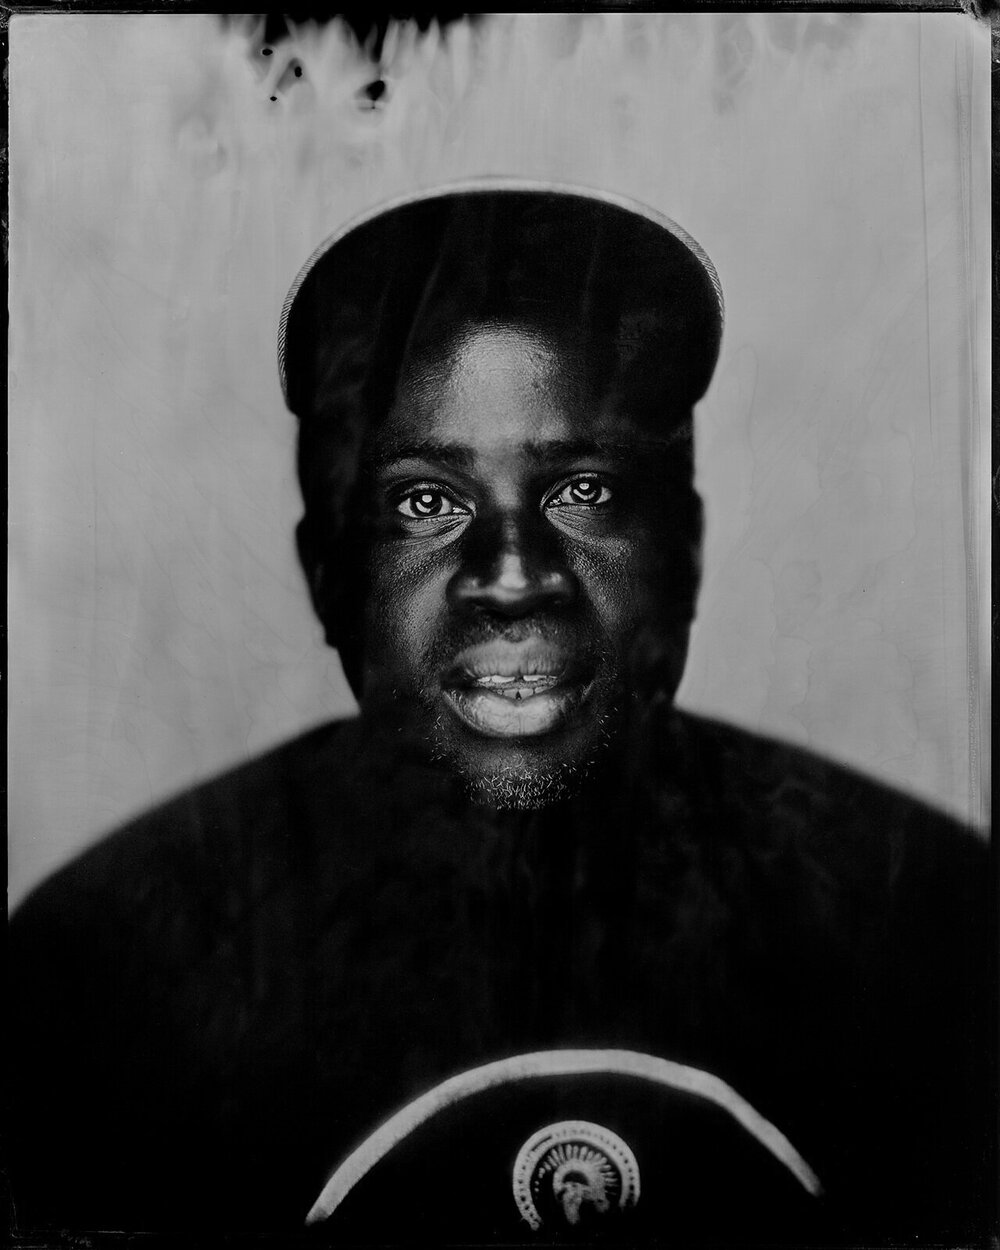 GUSDUGGER TINTYPE PHOTOGRAPHS   is a collaborative project by Birmingham-based photographers  CARY NORTON  +  JARED RAGLAND .       Roscoe Hall, Painter + Chef